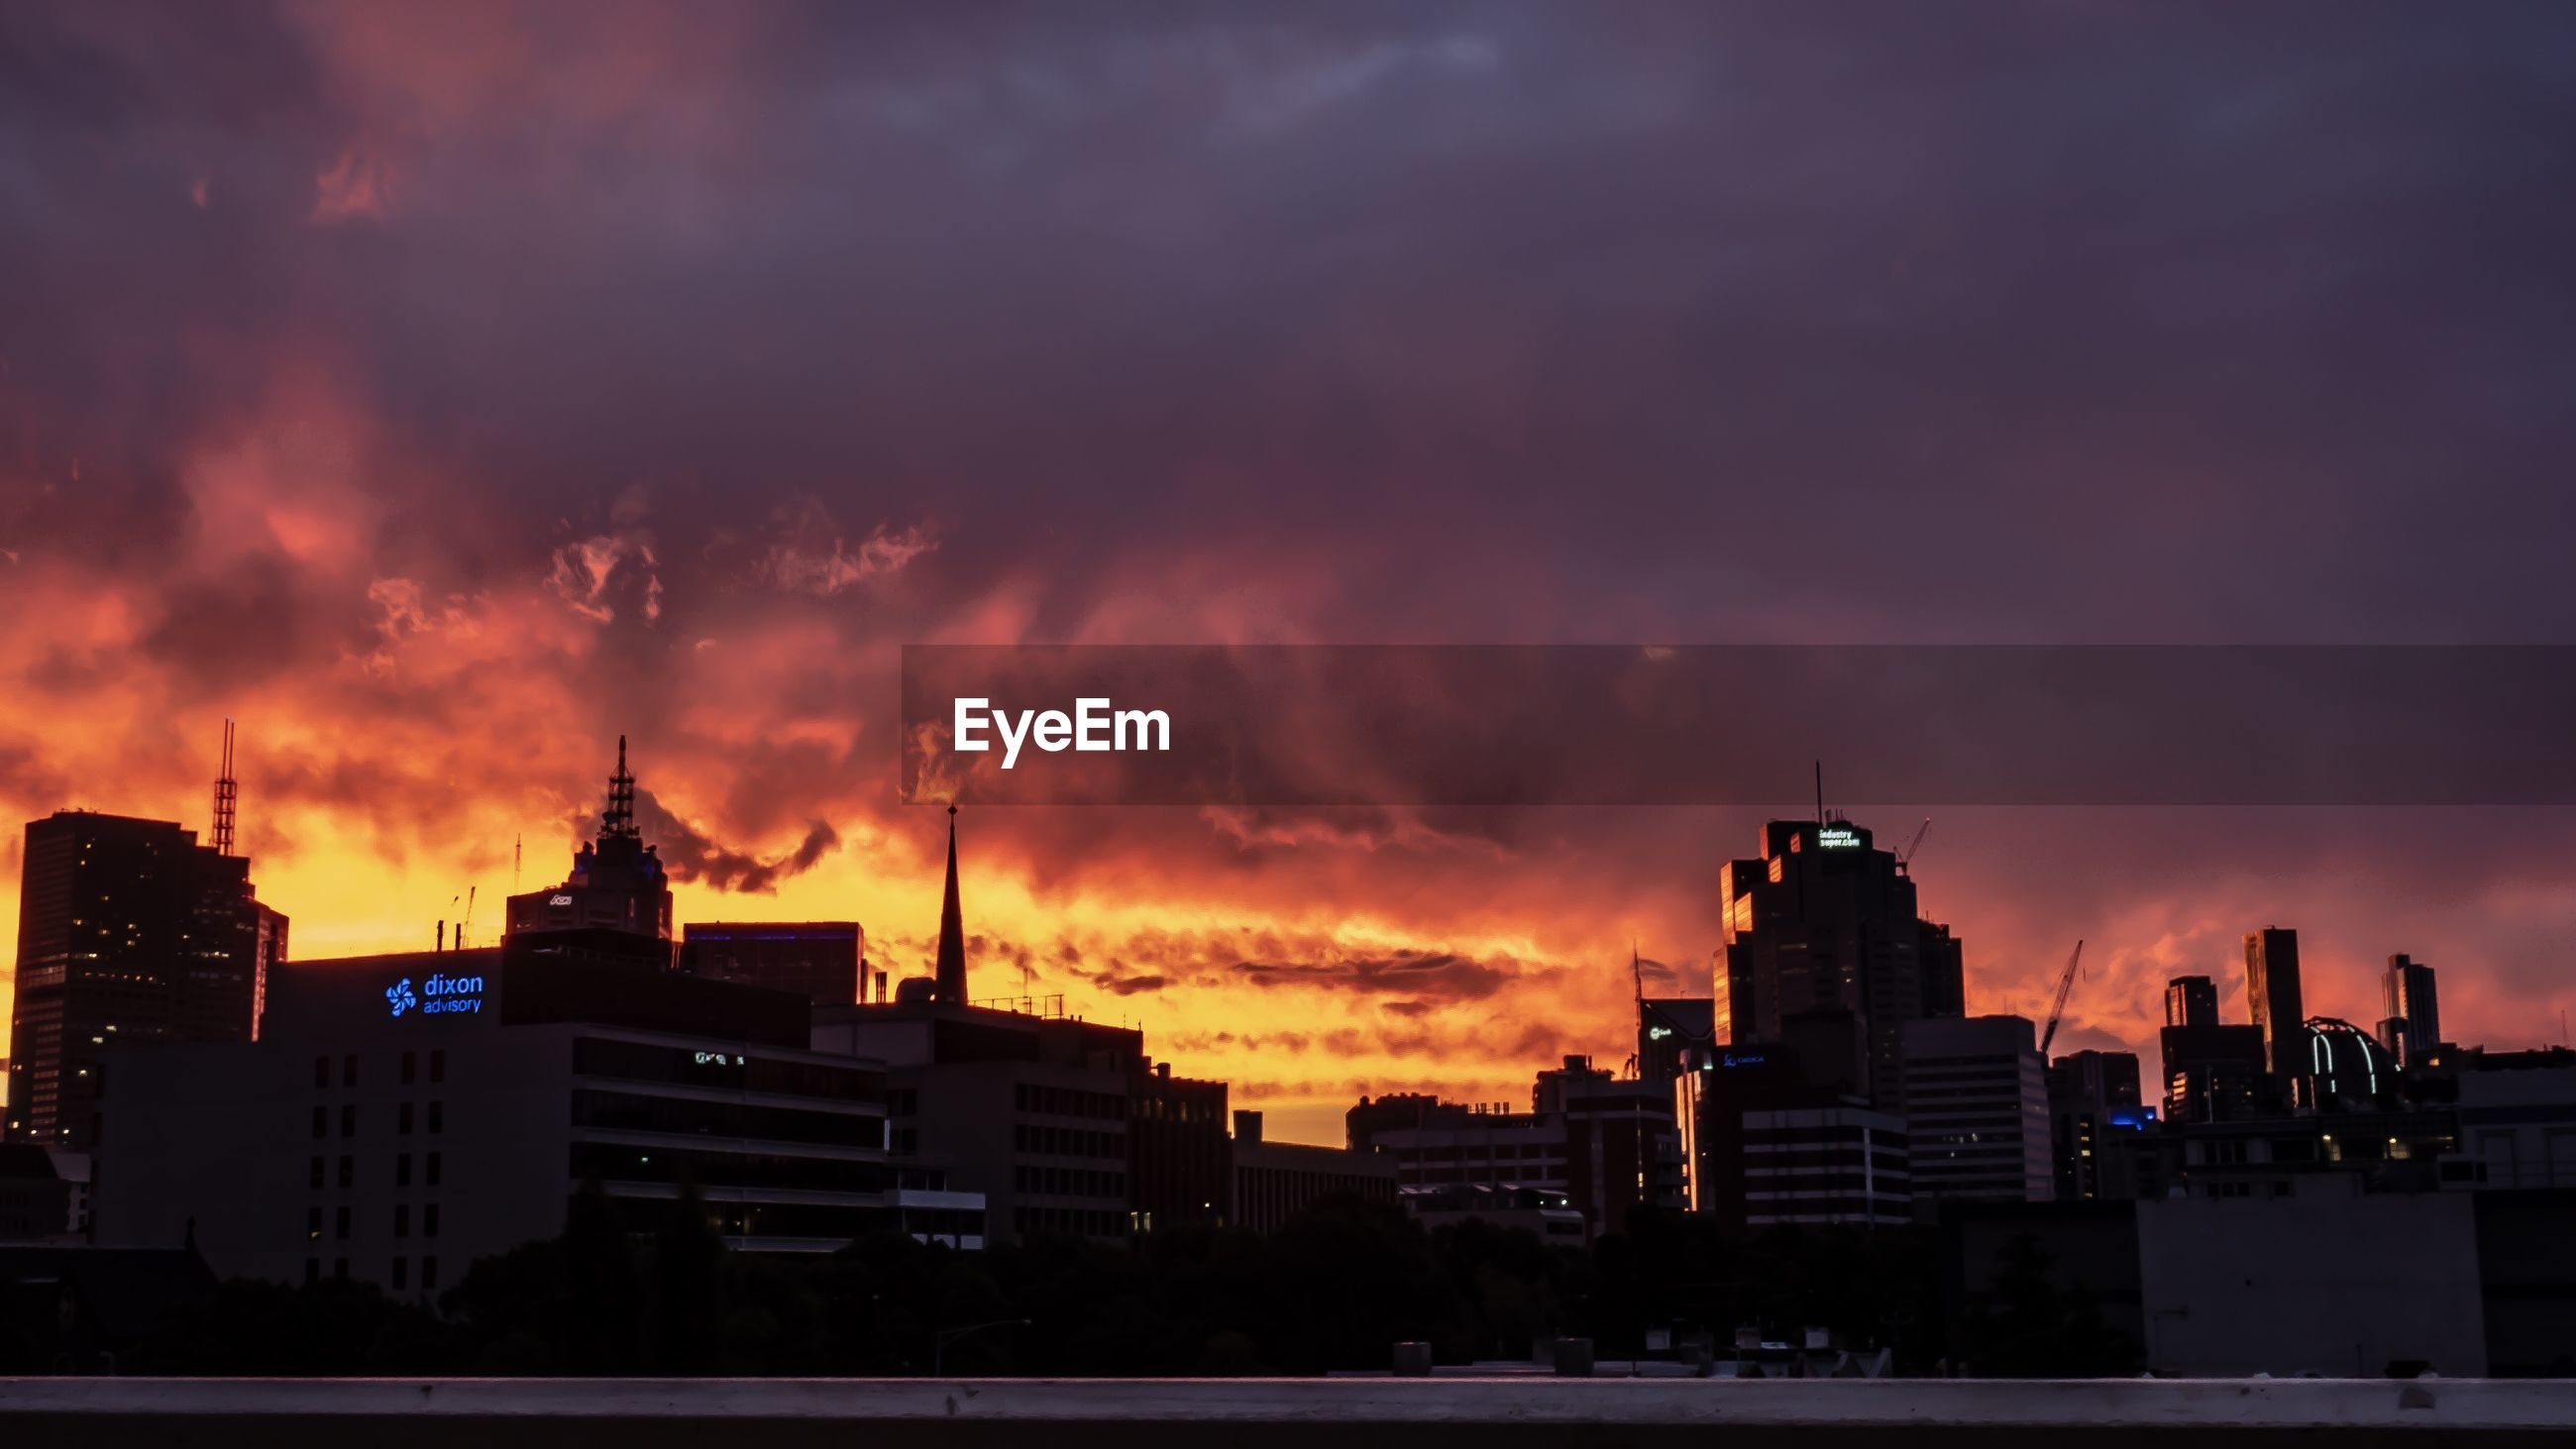 SILHOUETTE BUILDINGS AGAINST DRAMATIC SKY